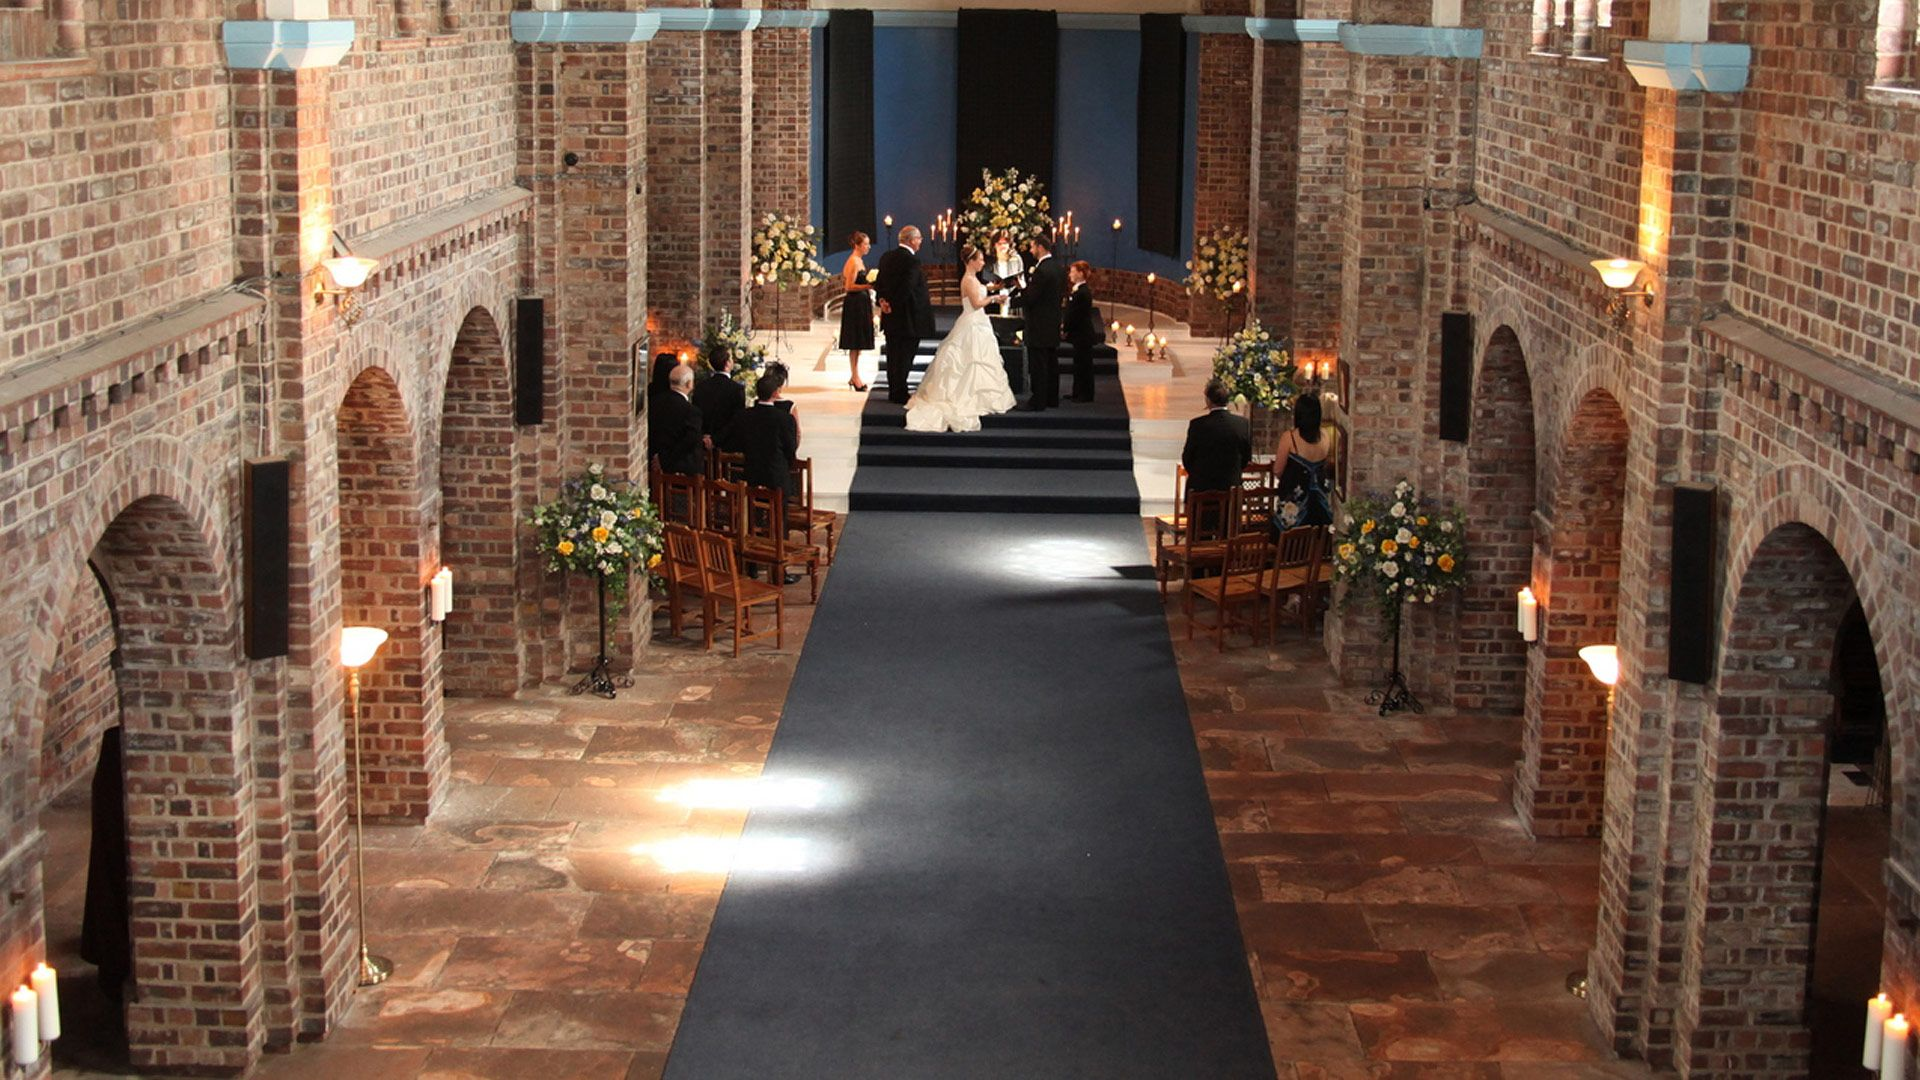 Gretna Green Weddings At The Wedding Bureau Complete Packages All Venues From Photography